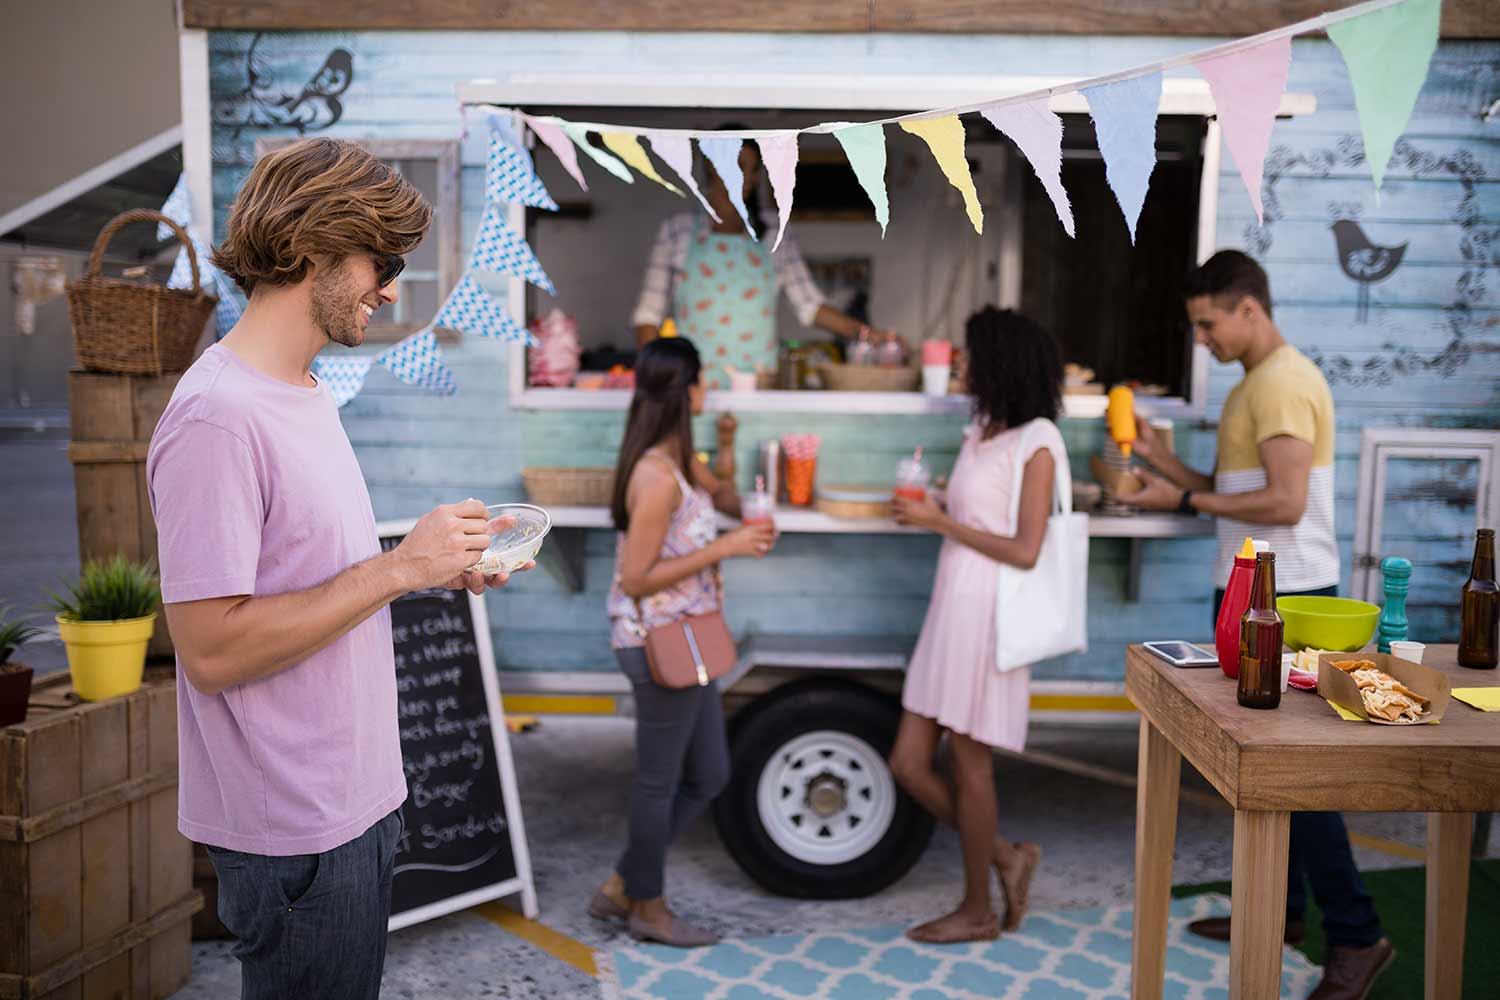 customers-having-snacks-from-food-truck-EDLBVPX.jpg